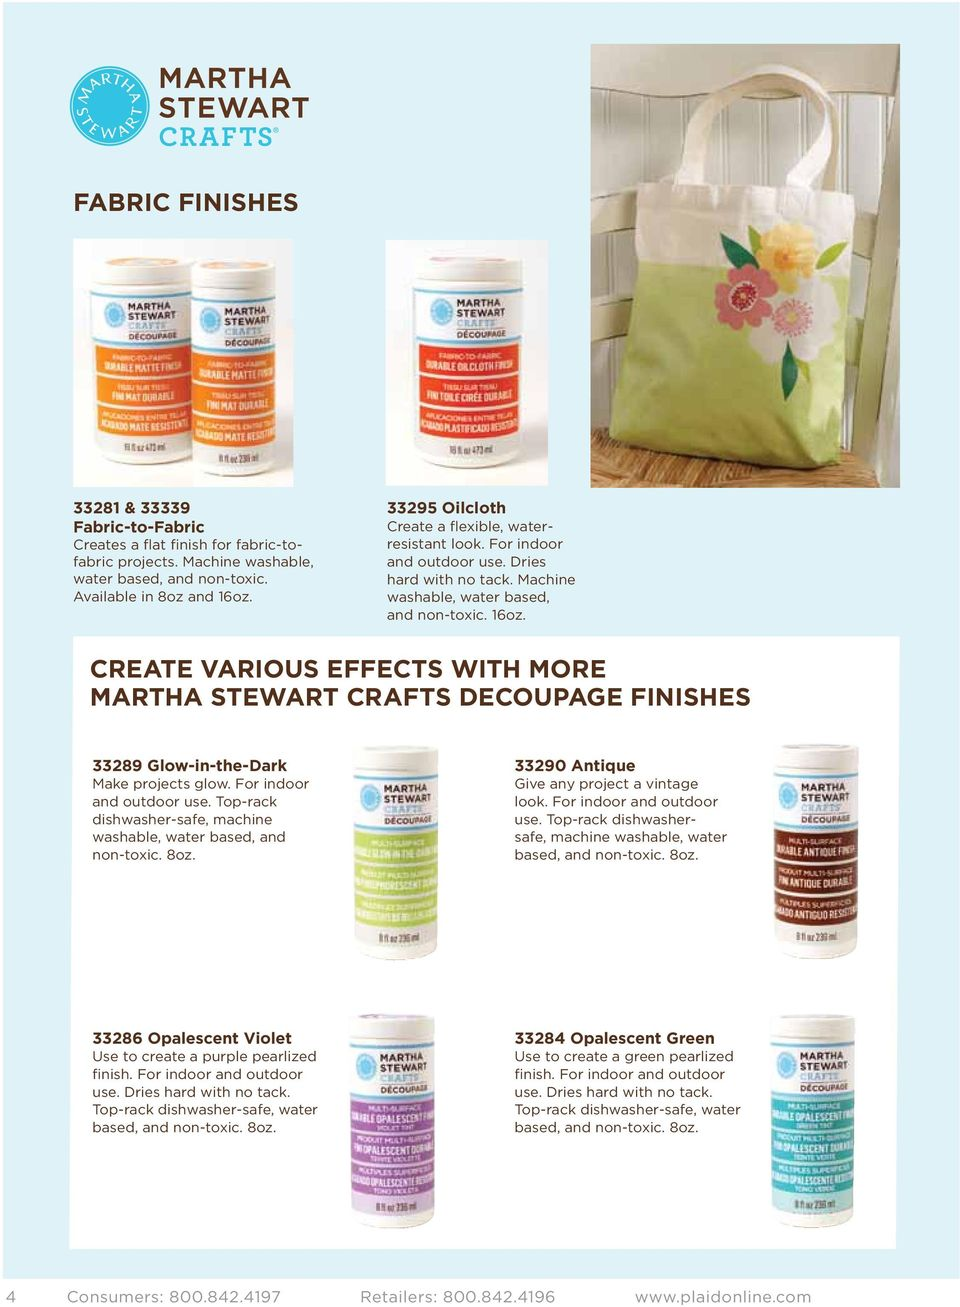 CREATE VARIOUS EFFECTS WITH MORE MARTHA STEWART CRAFTS DECOUPAGE FINISHES 33289 Glow-in-the-Dark Make projects glow. For indoor and outdoor use.